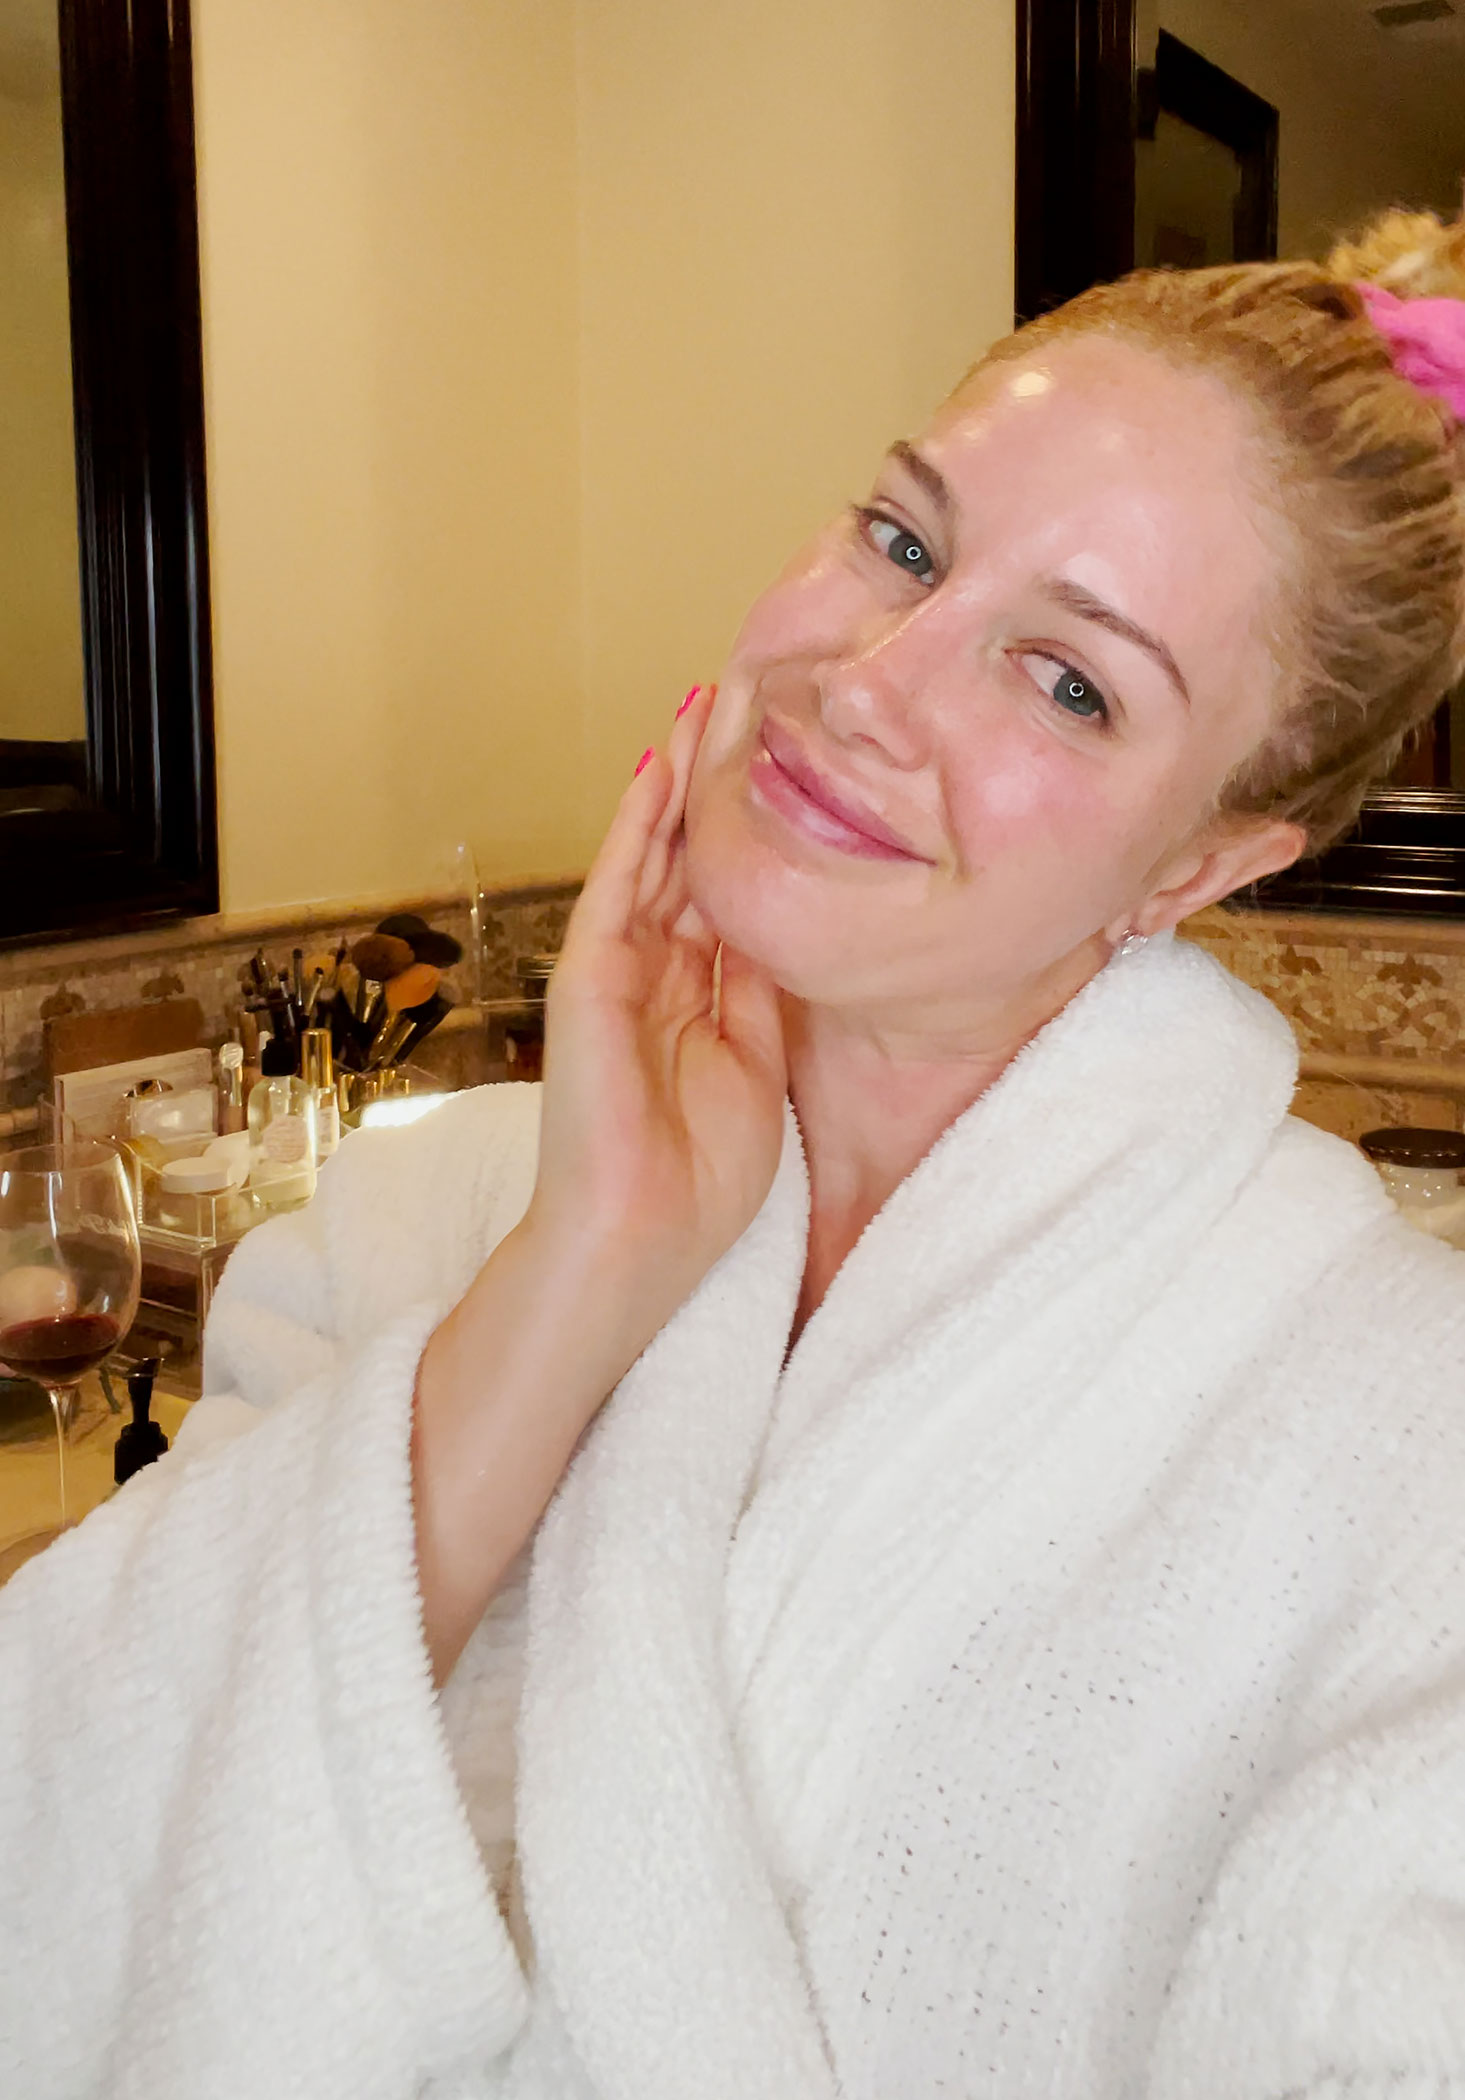 Frankincense, Horsetail and More Ancient Beauty Remedies Heidi Montag Swears By